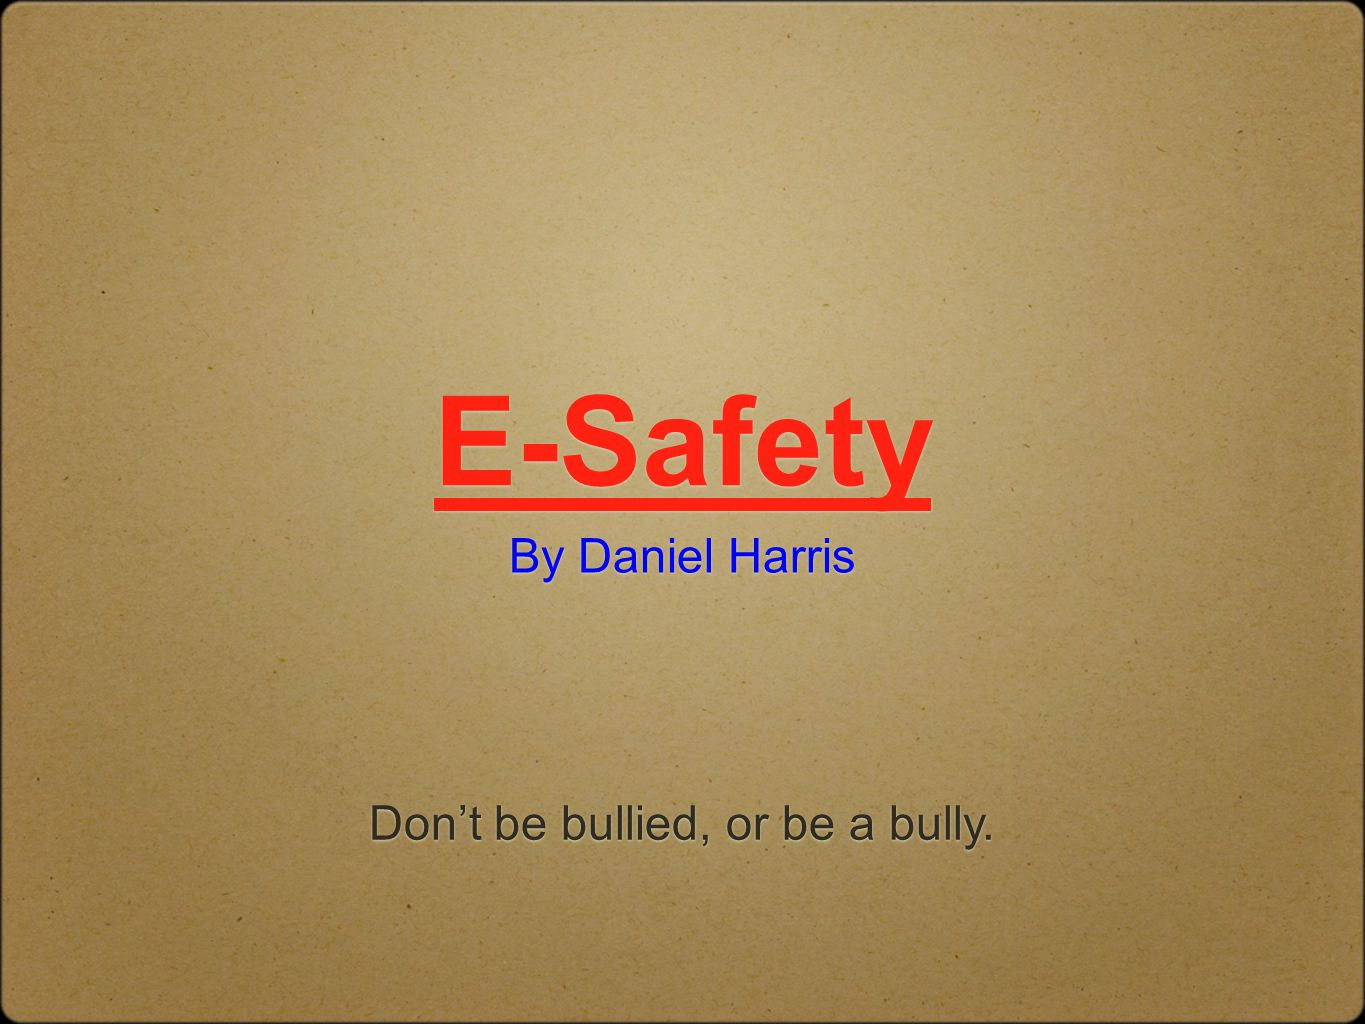 Don't be bullied, or be a bully.